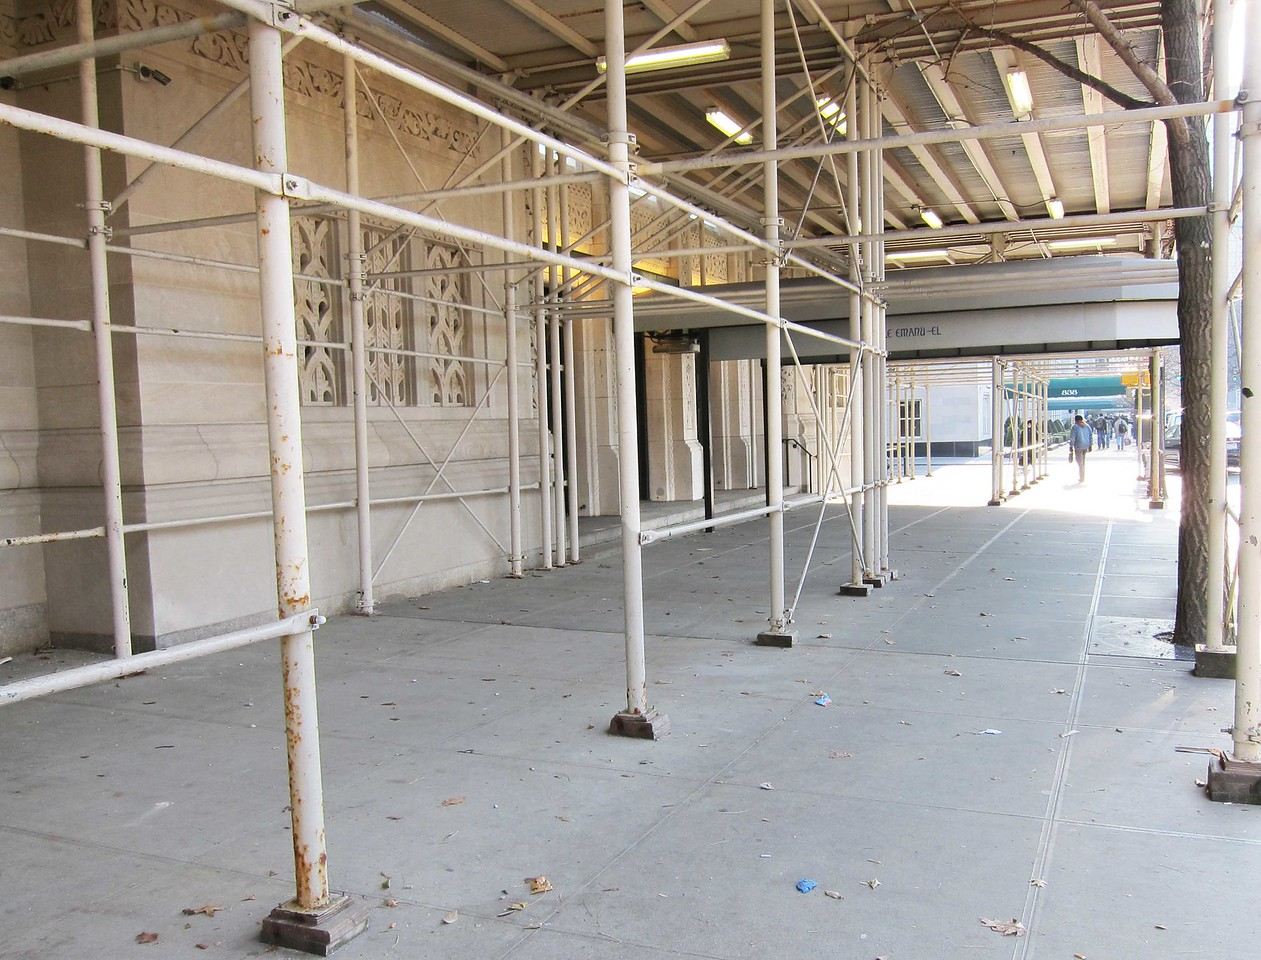 View from the level of the load-in doors to the main entry doors at the awning, seen from the north along 5th Avenue.